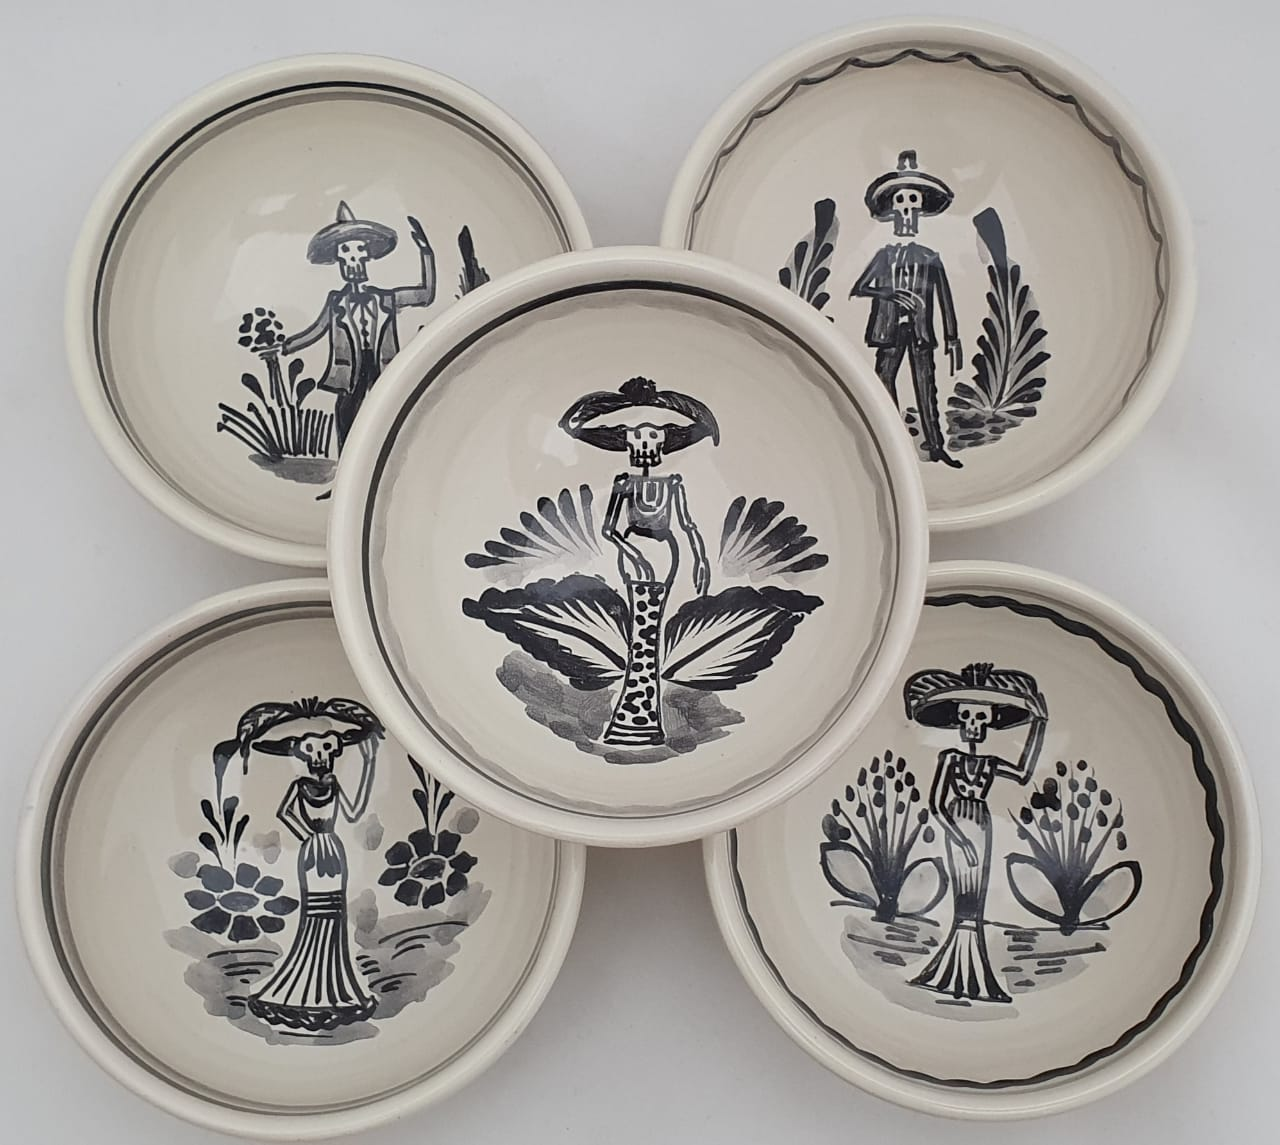 Catrina Small Bowl Set of 5 pieces 4.9